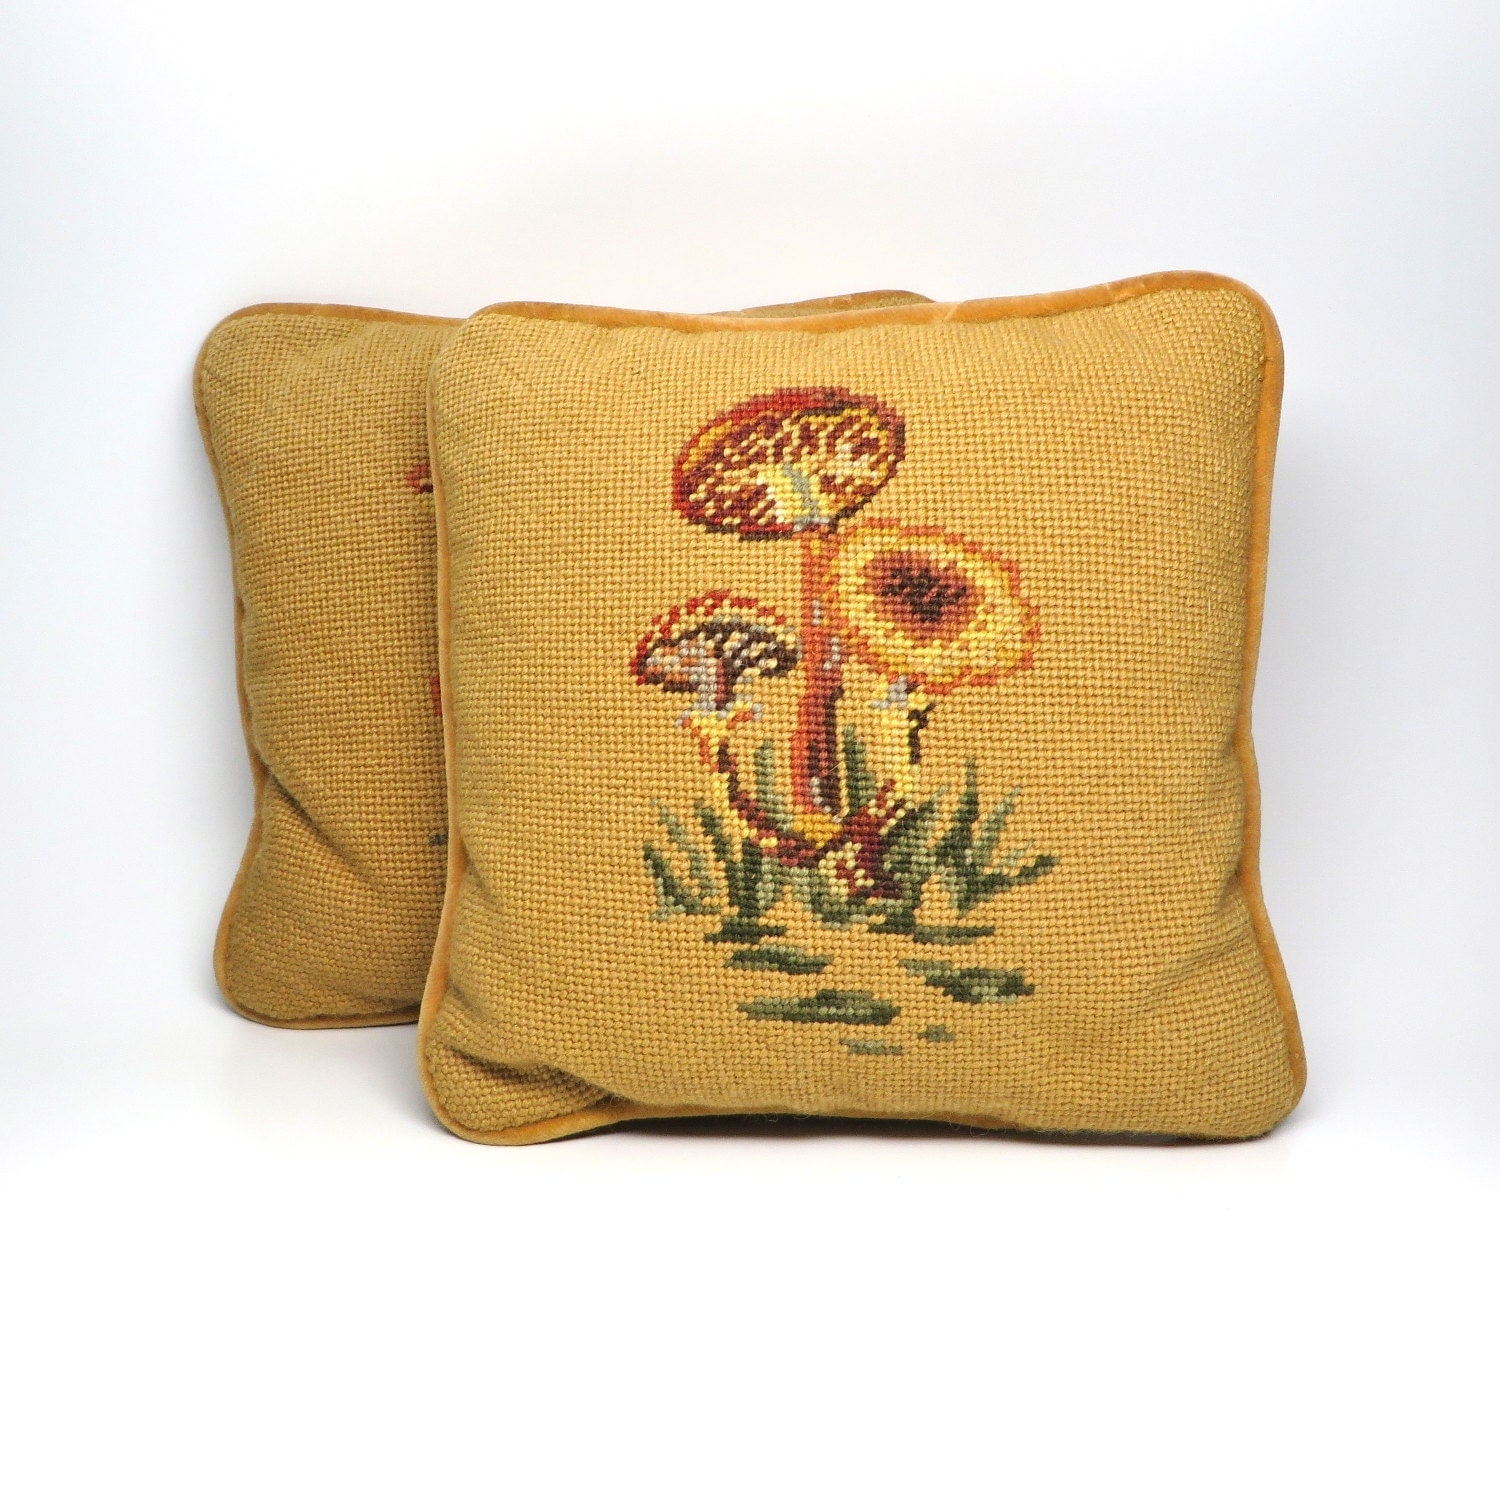 Vintage mushroom pillows small mustard yellow toss by for Small toss pillows